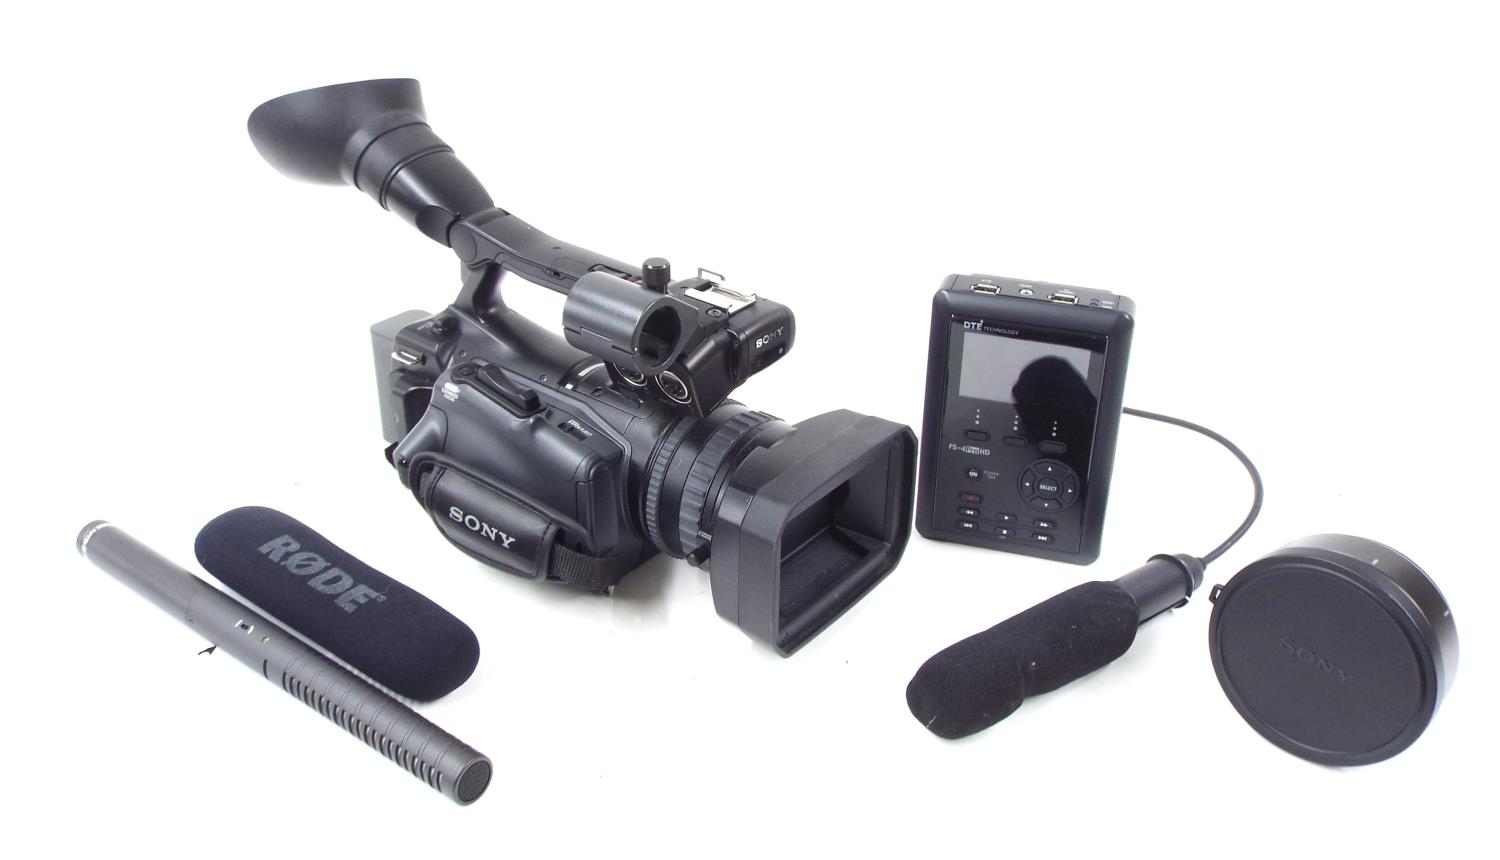 Sony HVR-V1E video camera outfit, with Carl Zeiss Vario-Sonnar T* 1,6/3,9-78 lens, wide conversion